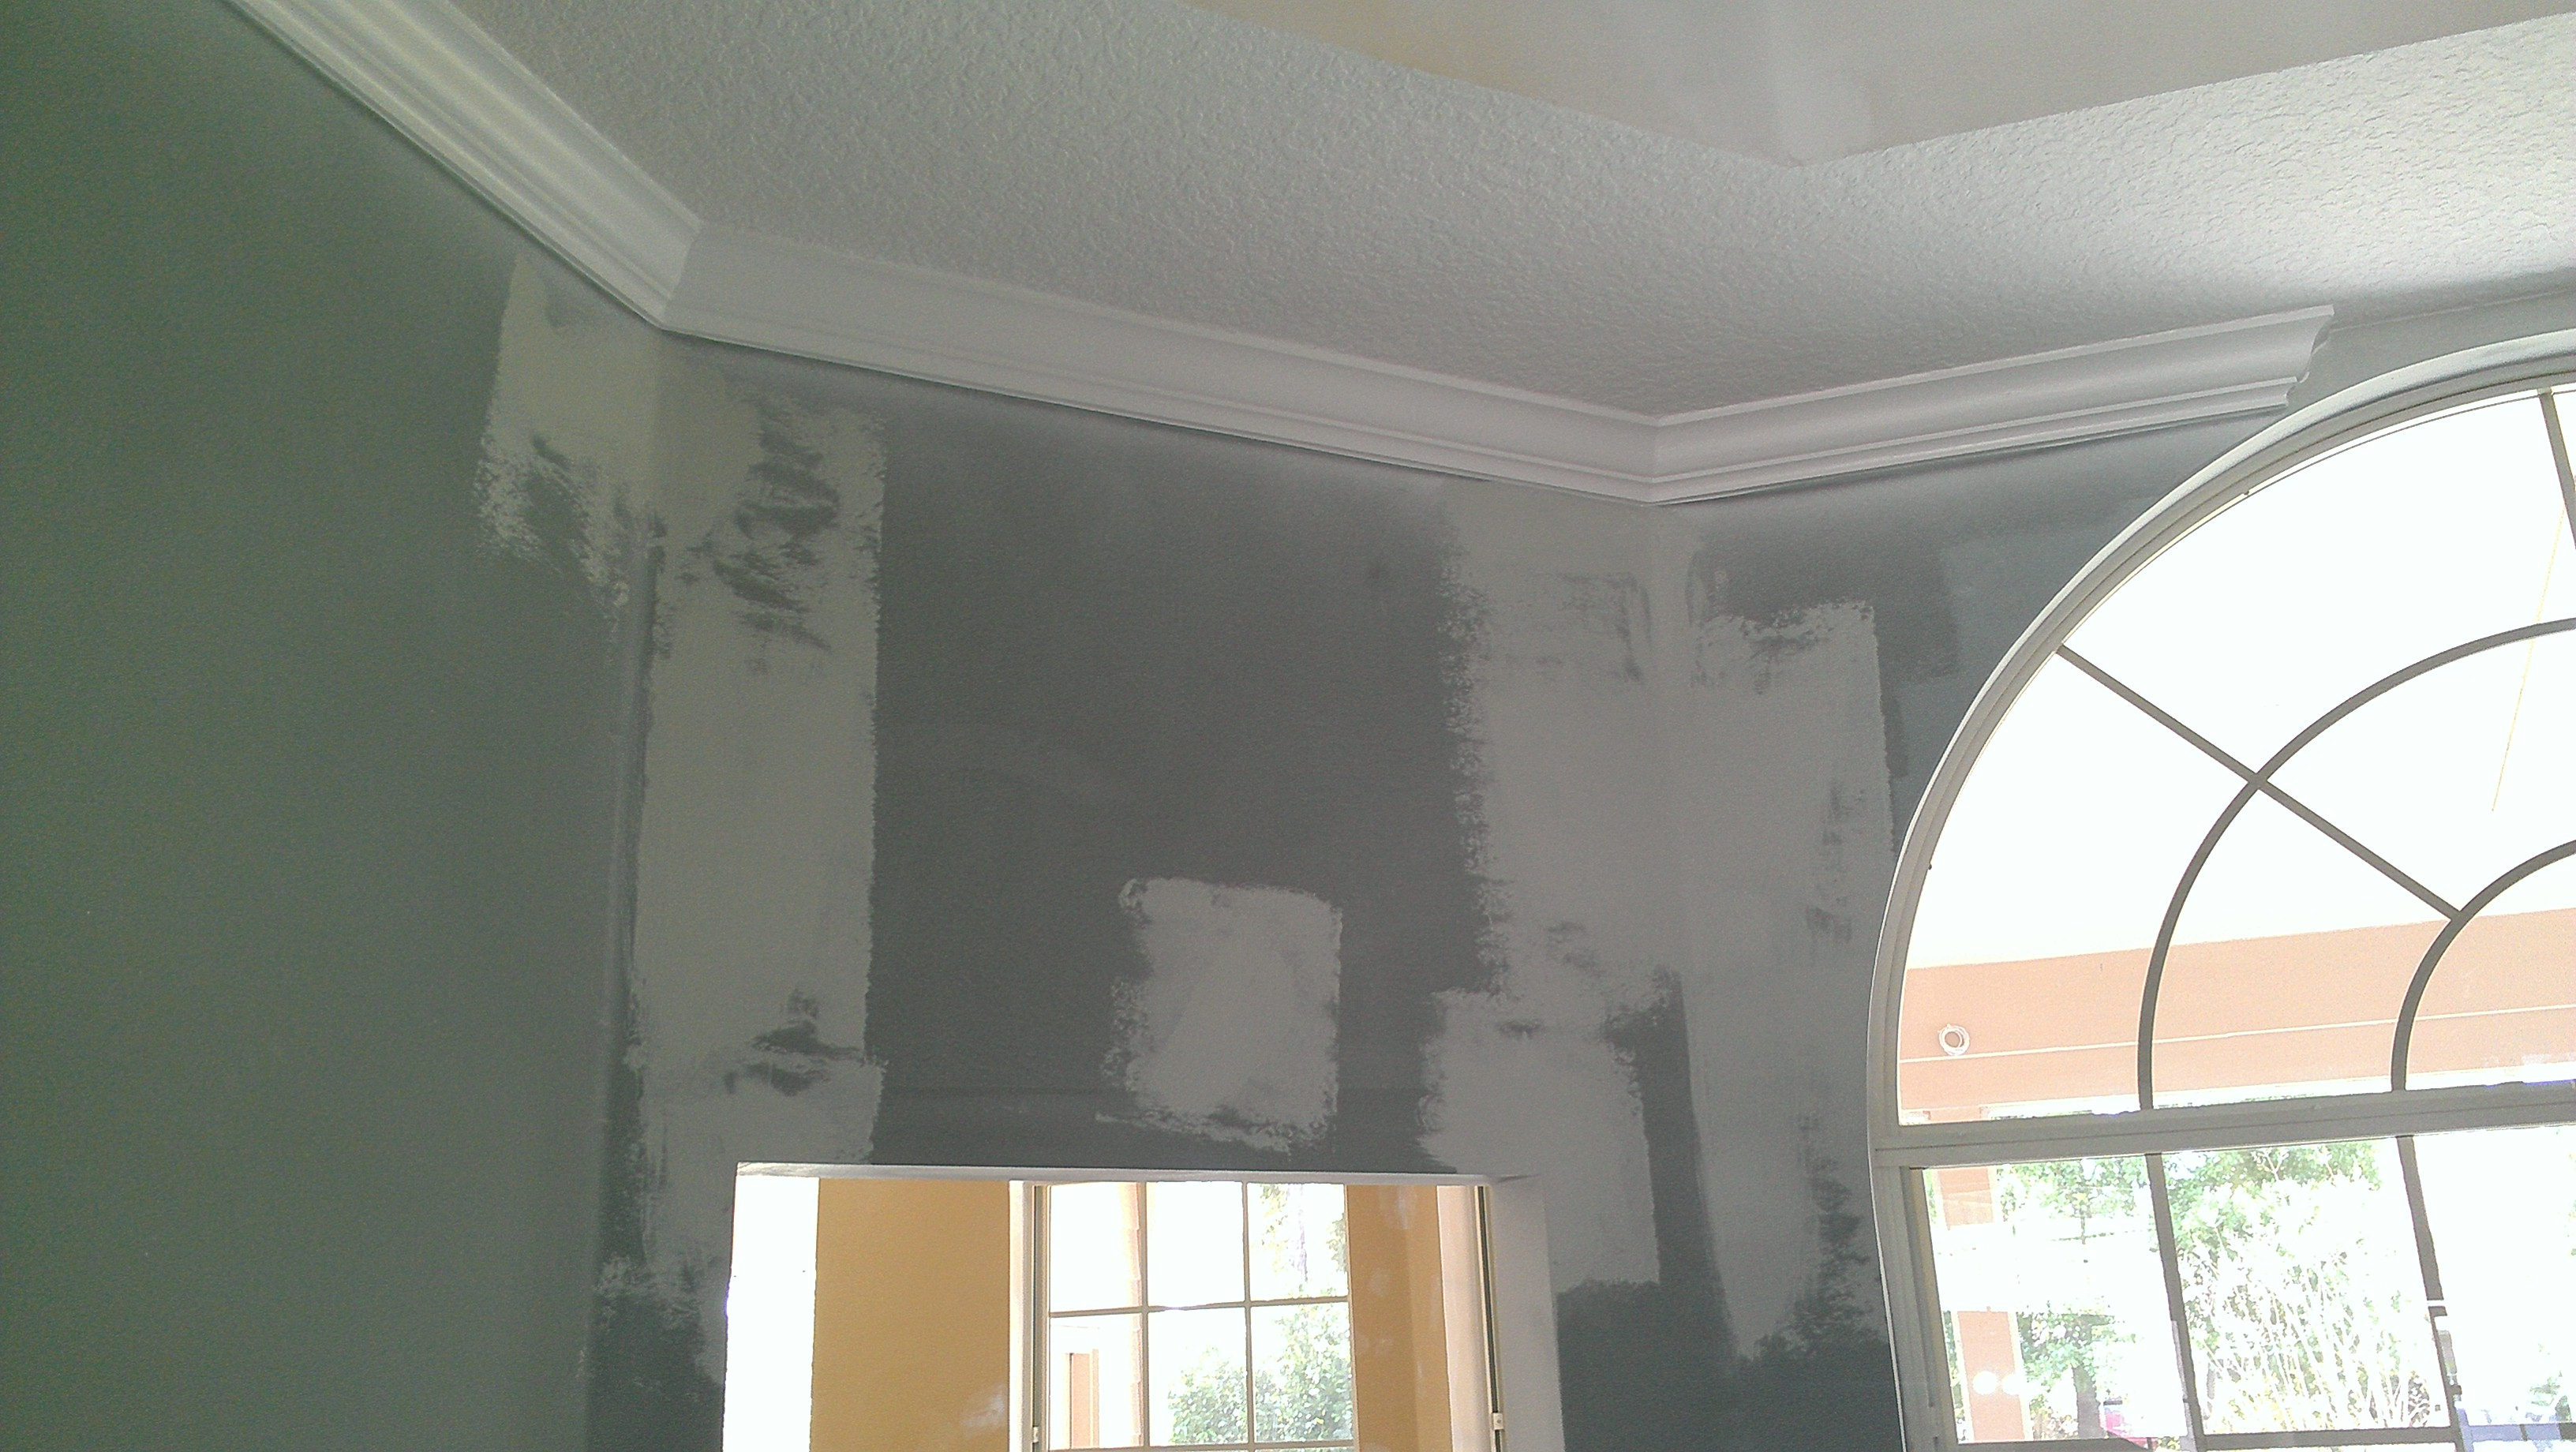 100 jacksonville interior and exterior house the best designer tested decorating tips - Painting interior and exterior plan ...